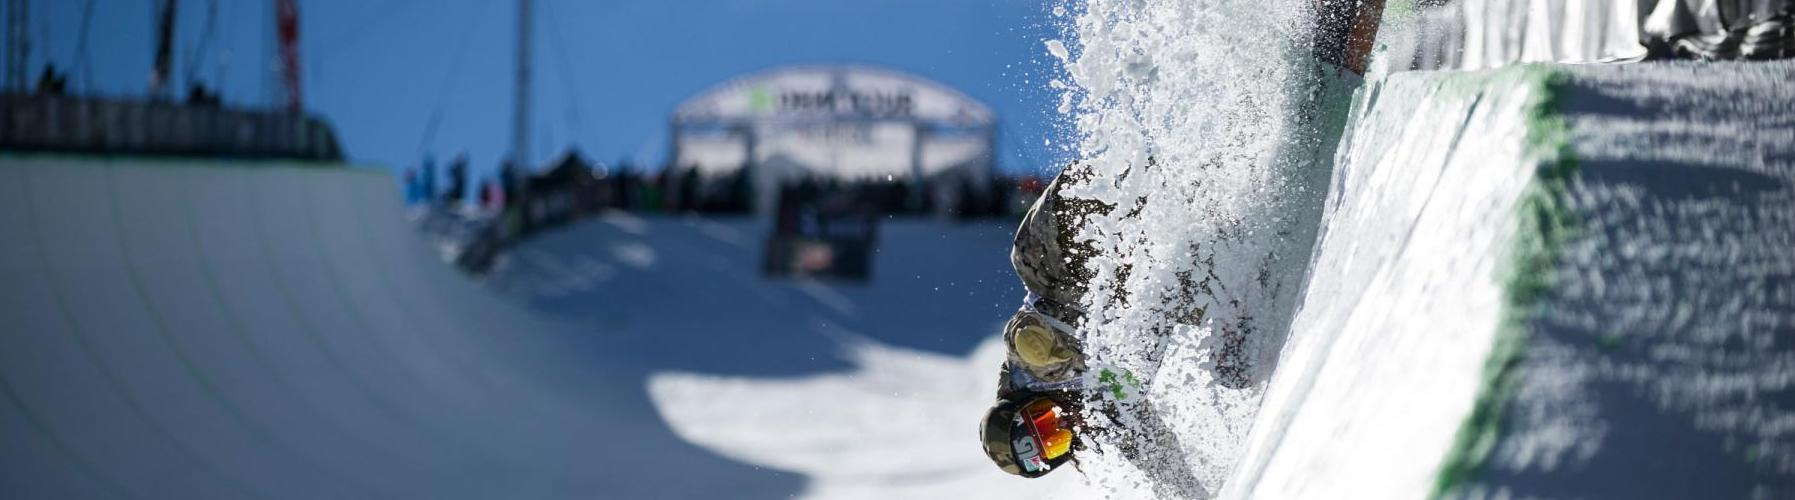 SkyRun Breckenridge Dew Tour Lodging Deals